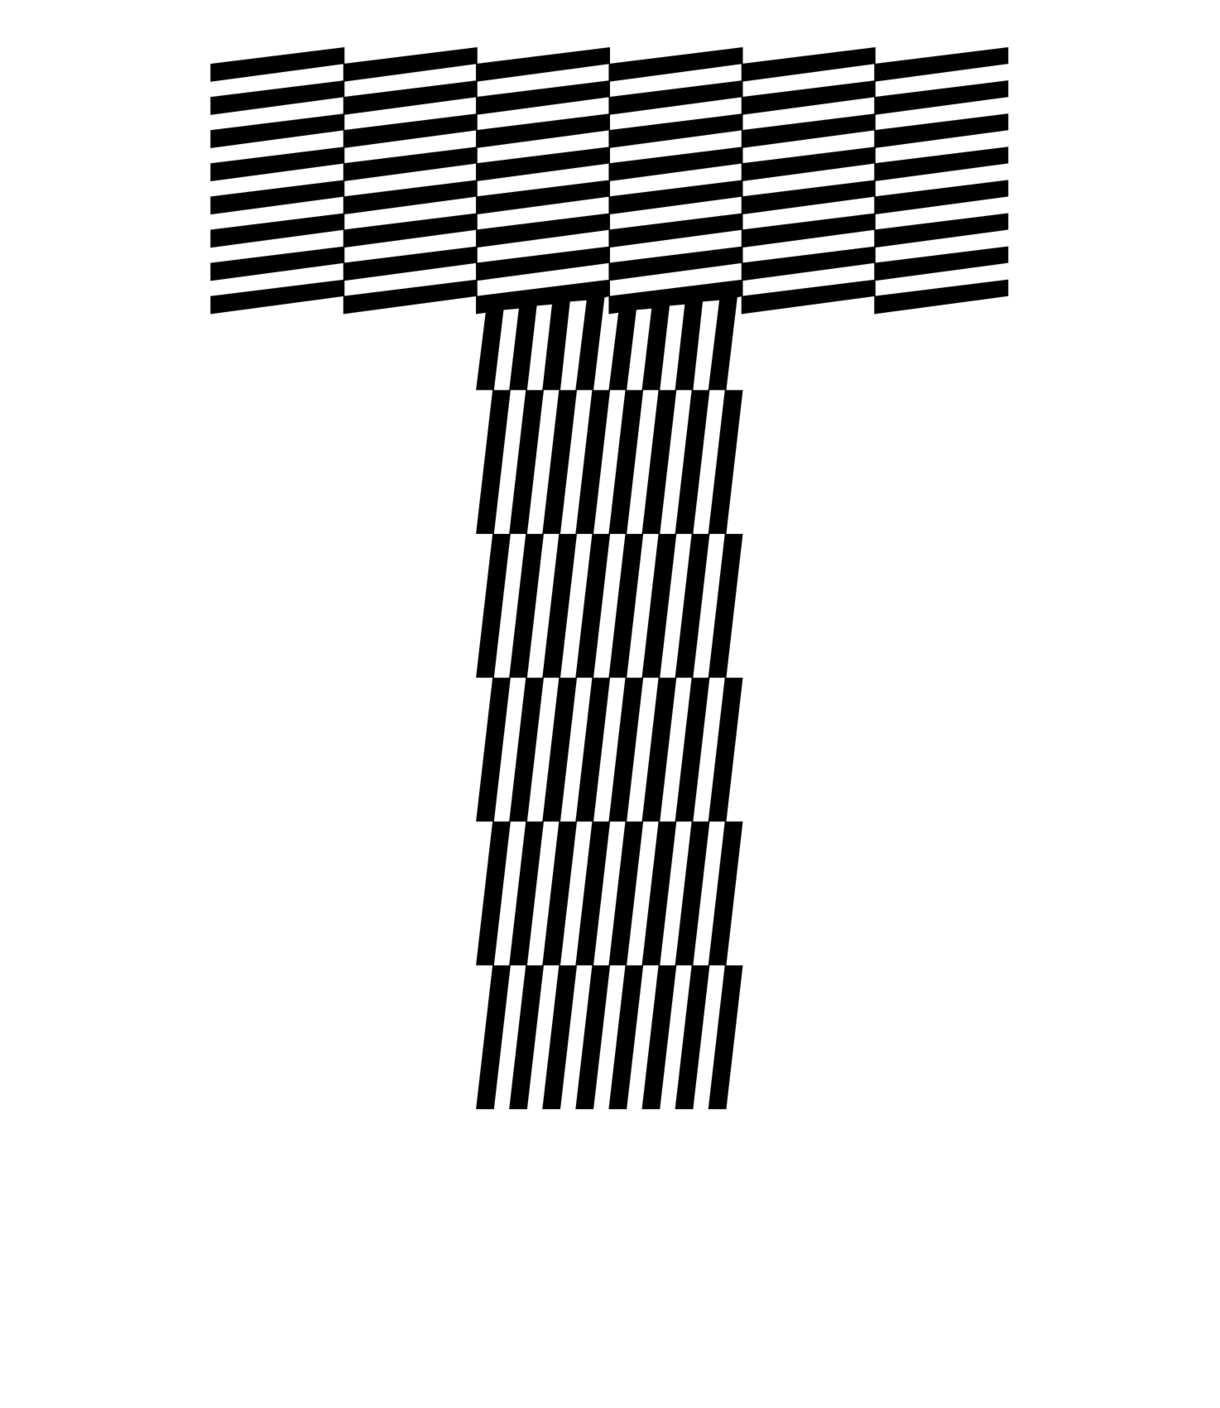 pattern-project-letters-19-1220x1407px